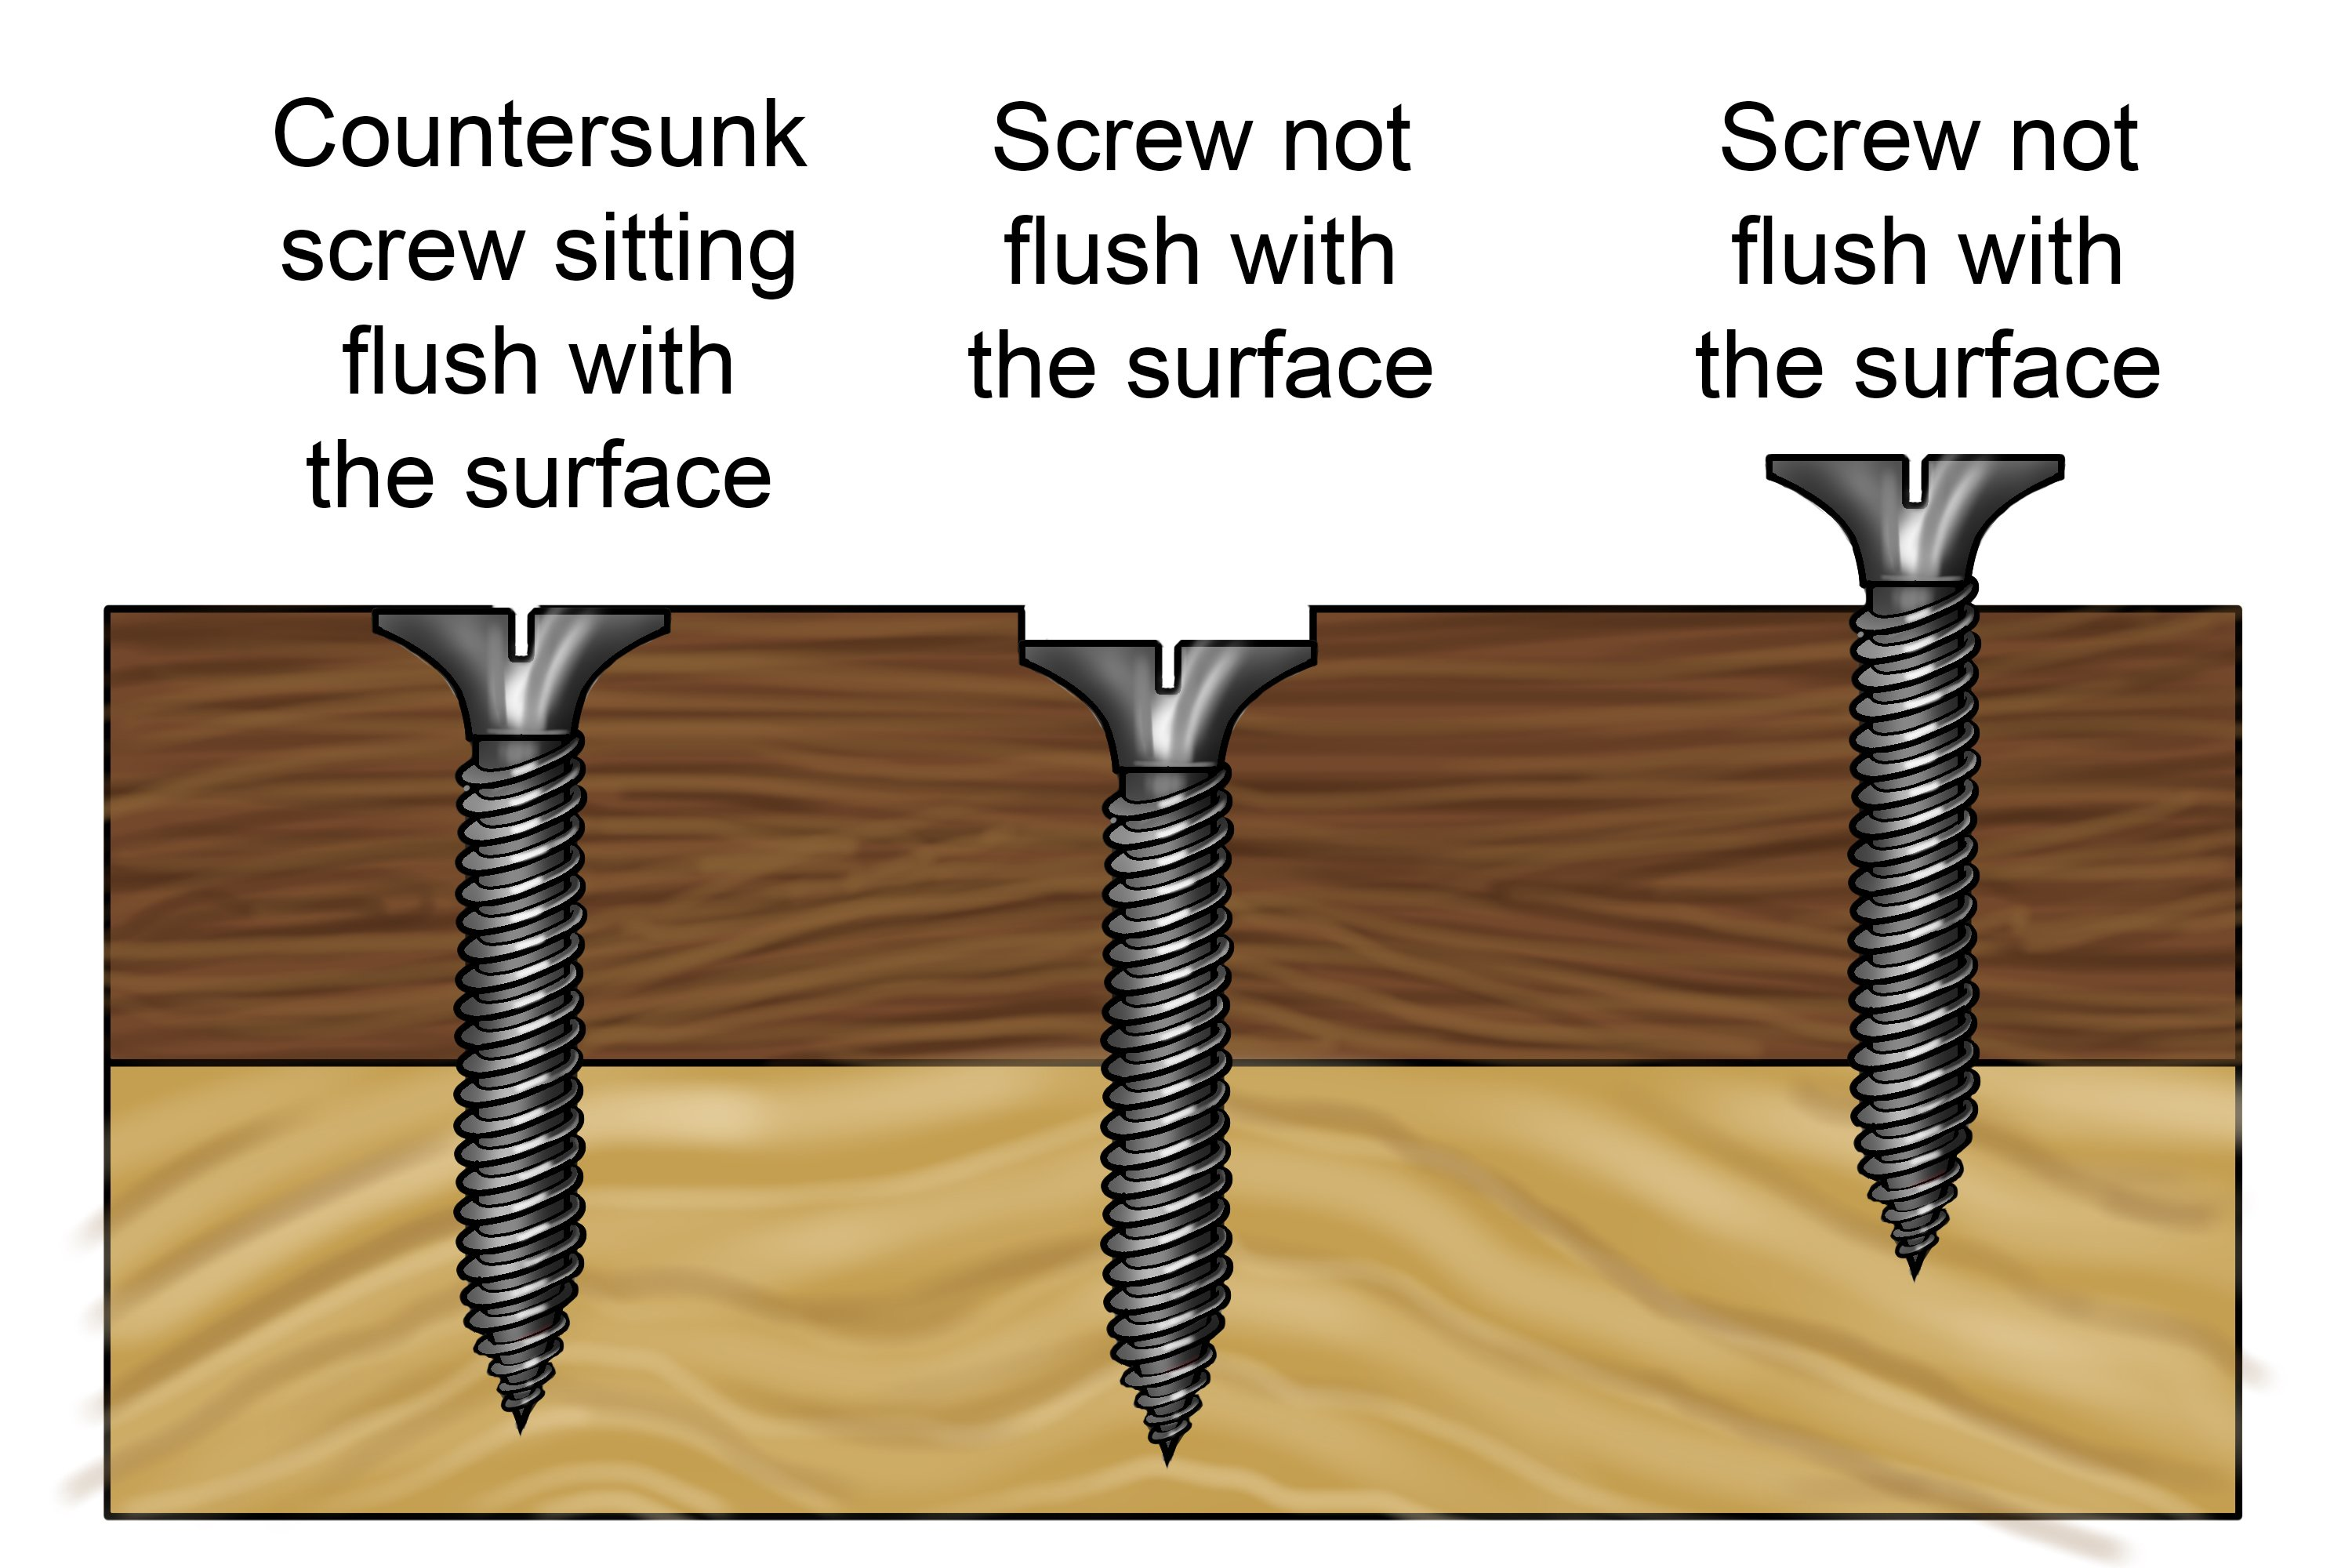 A countersunk screw flush with the surface of the material and two screws not flush with the surface